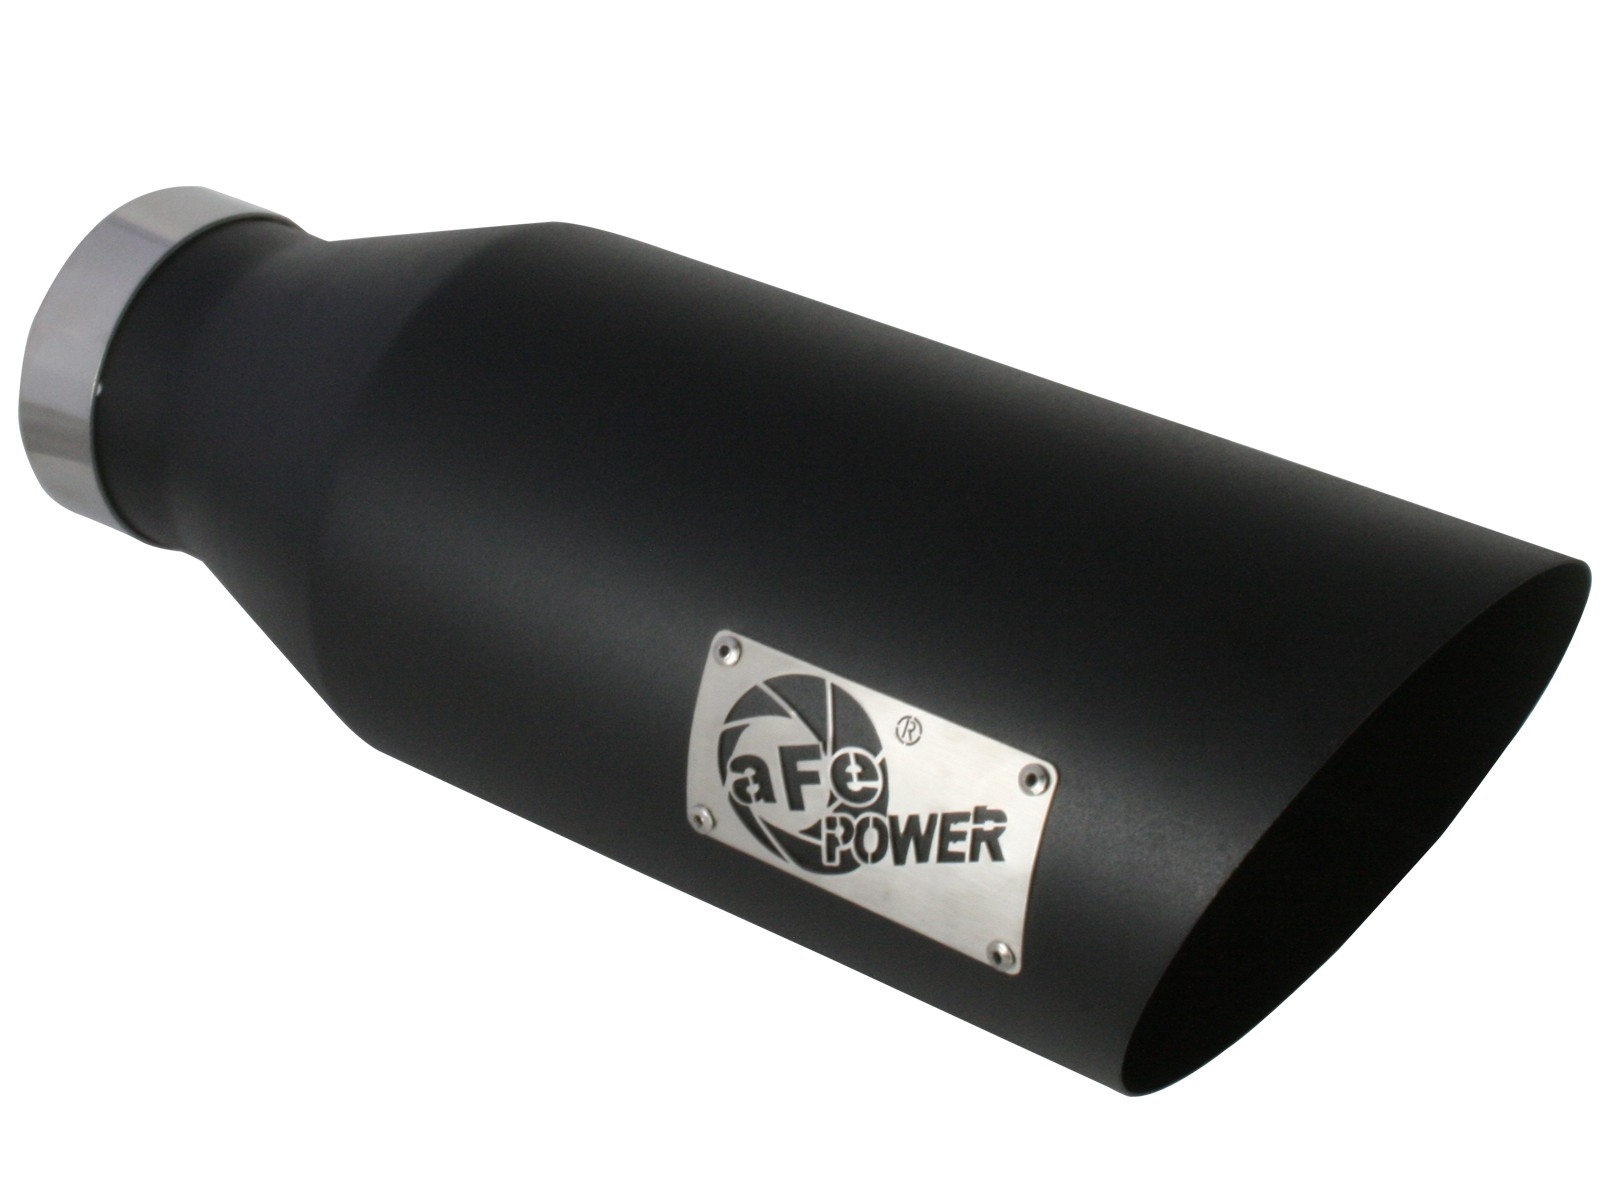 """aFe POWER 49-92023-B MACH Force-Xp 4"""" 409 Stainless Steel Exhaust Tip"""